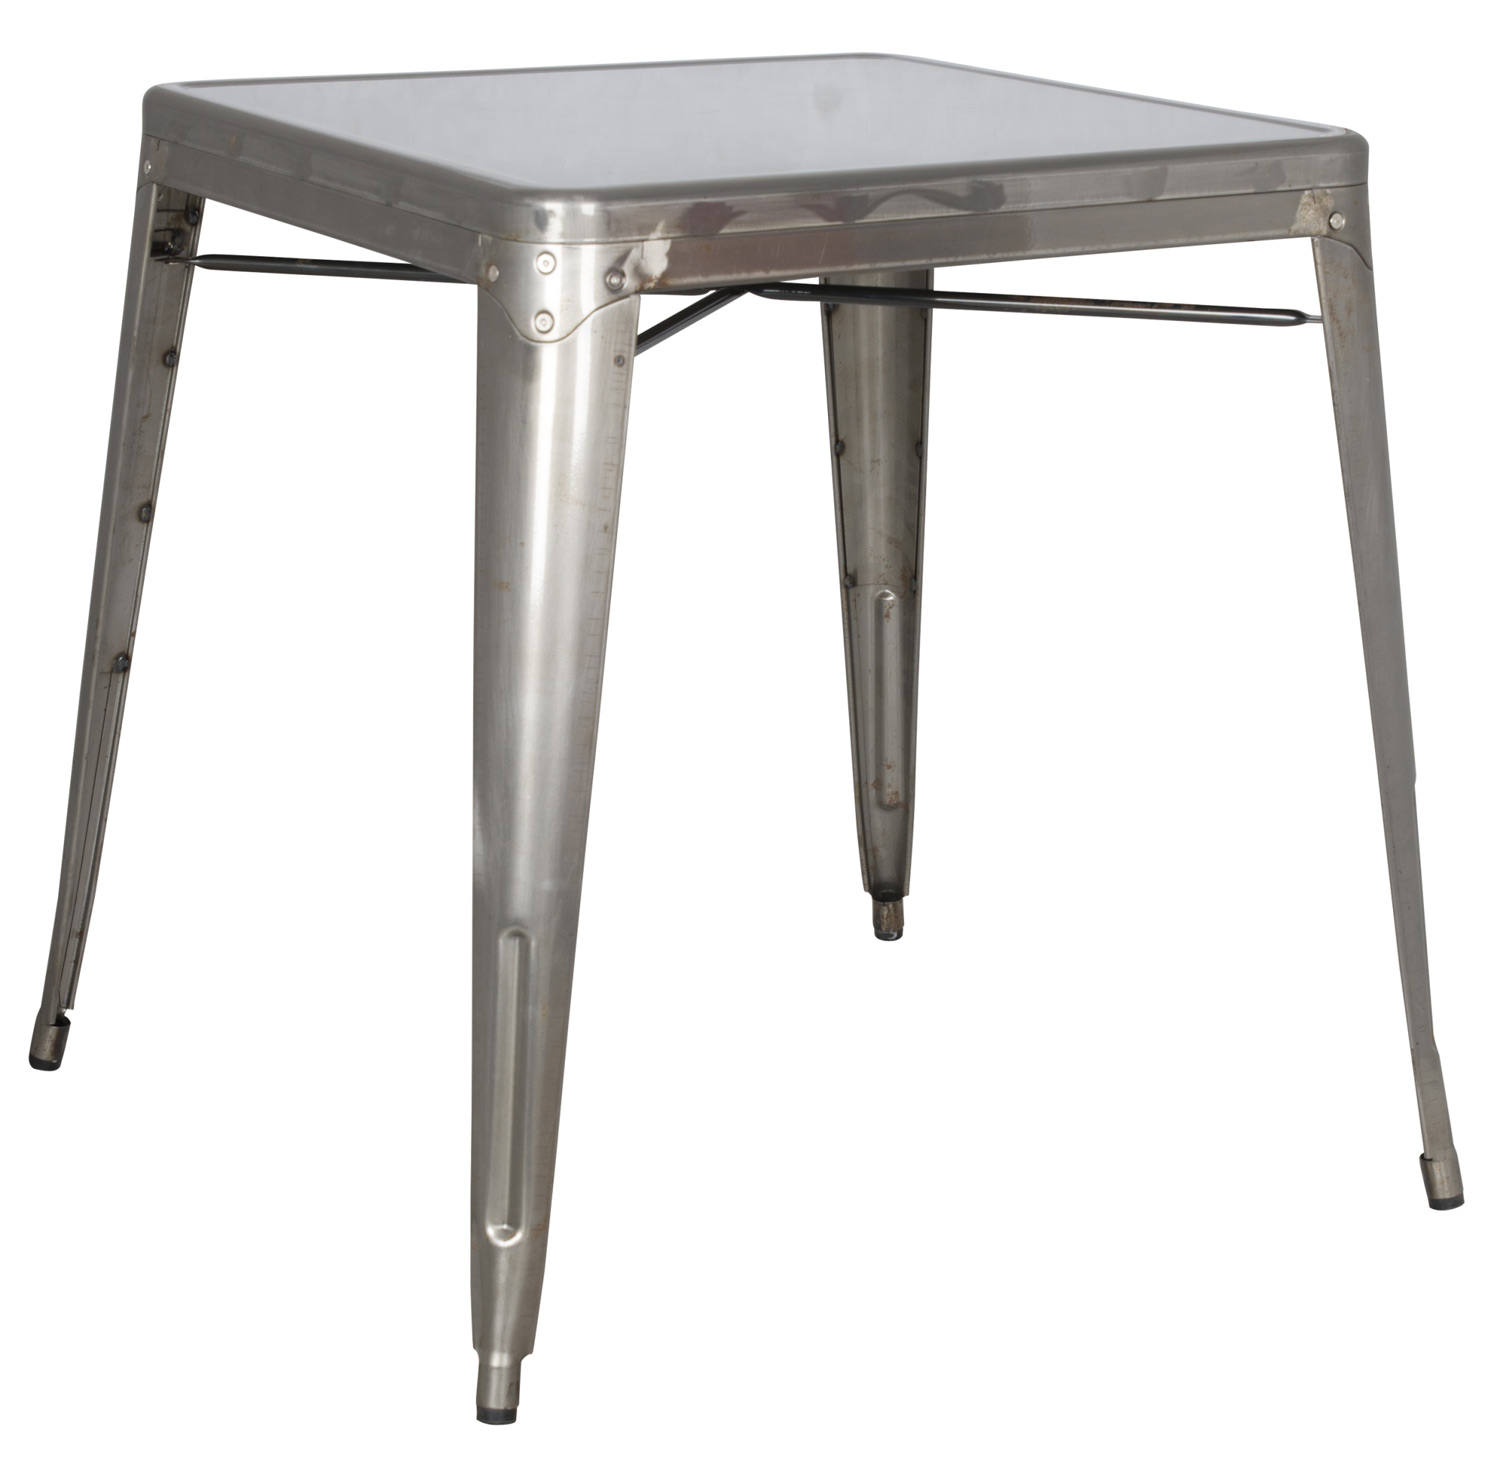 Chintaly Imports 8029 Cold Roll Steel Dining Table - Gun Metal